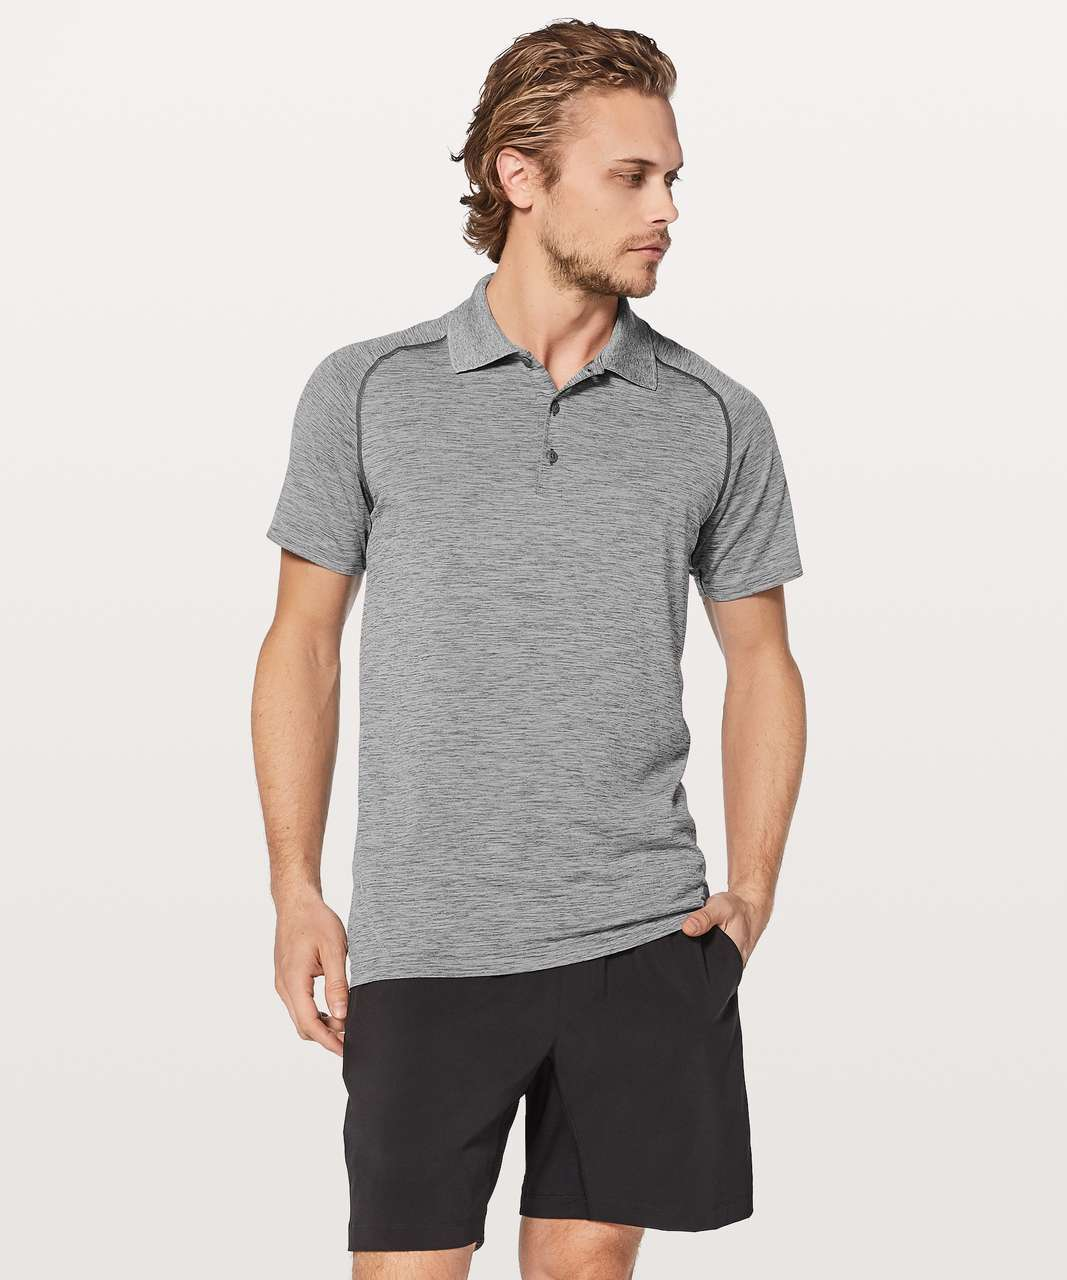 Lululemon Metal Vent Tech Polo - Slate / White